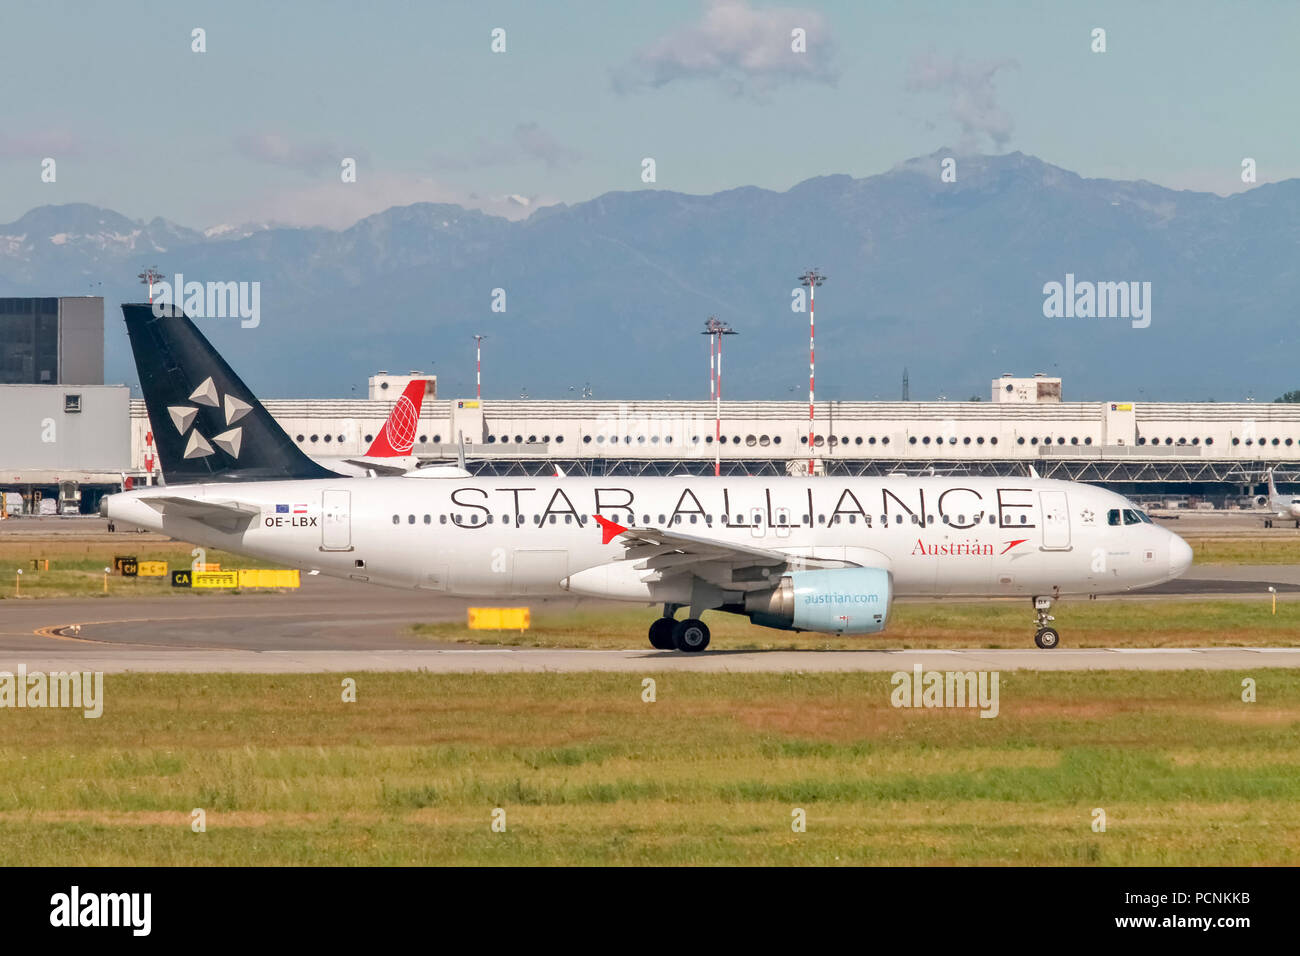 Austrian Airlines star alliance Airbus A320-200 (OE-LBX) at Milan - Linate Italy - Stock Image